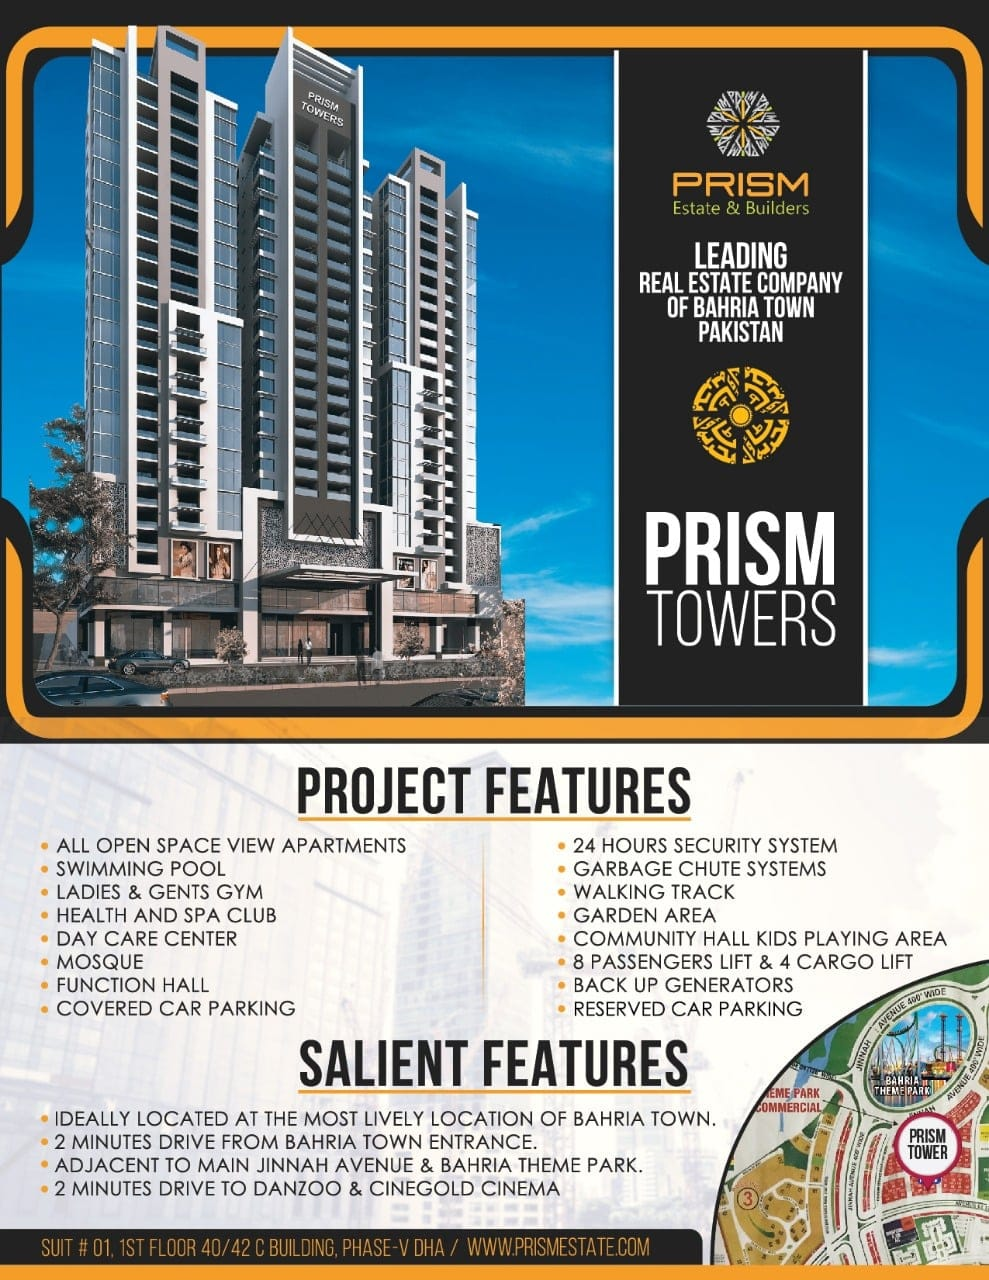 Prism Towers - Project & Salient Features